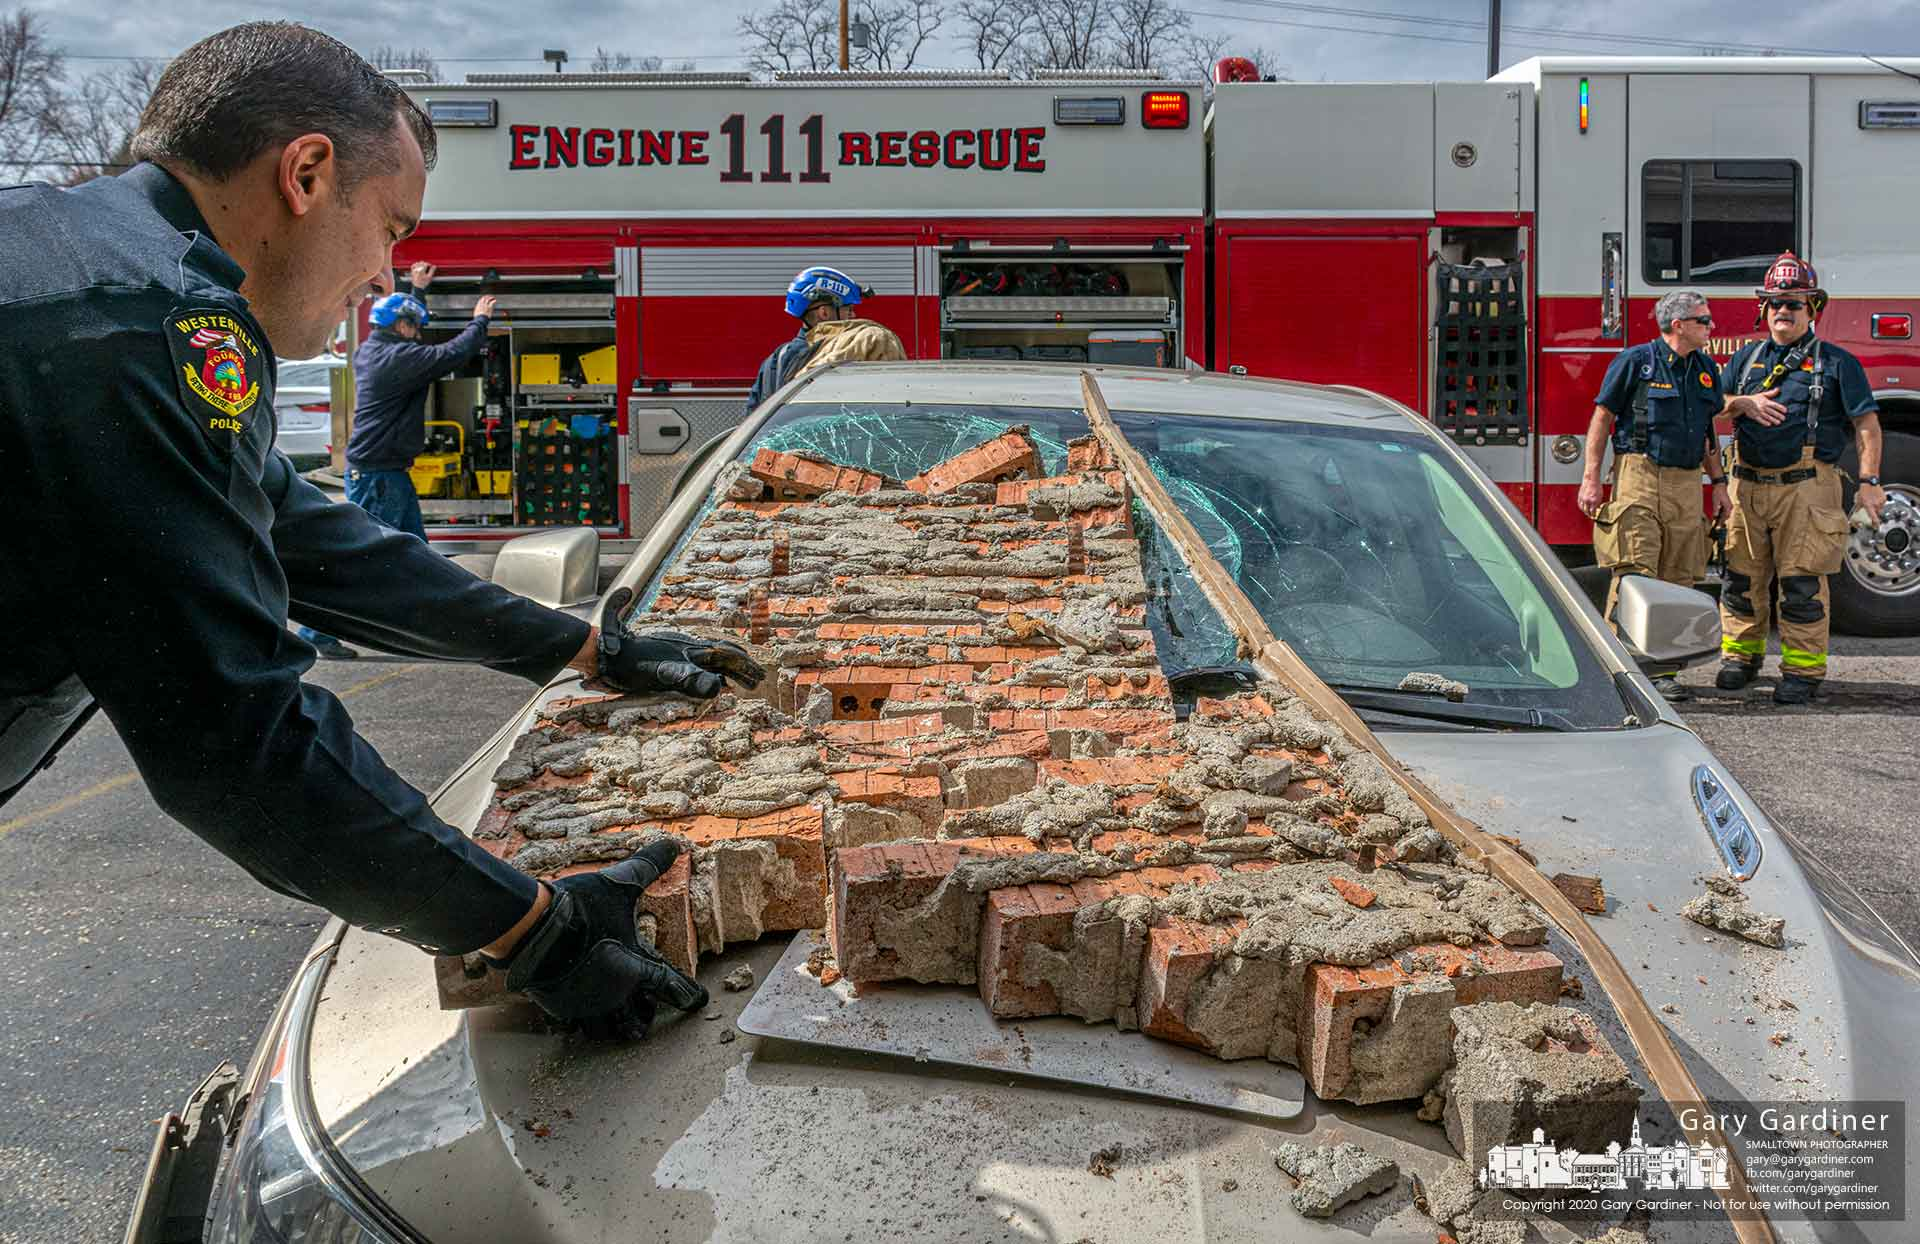 A Westerville police officer removes sections of brick that fell on a car when it crashed into a storefront at Hanby Square on South State Street. My Final Photo for March 12, 2020.